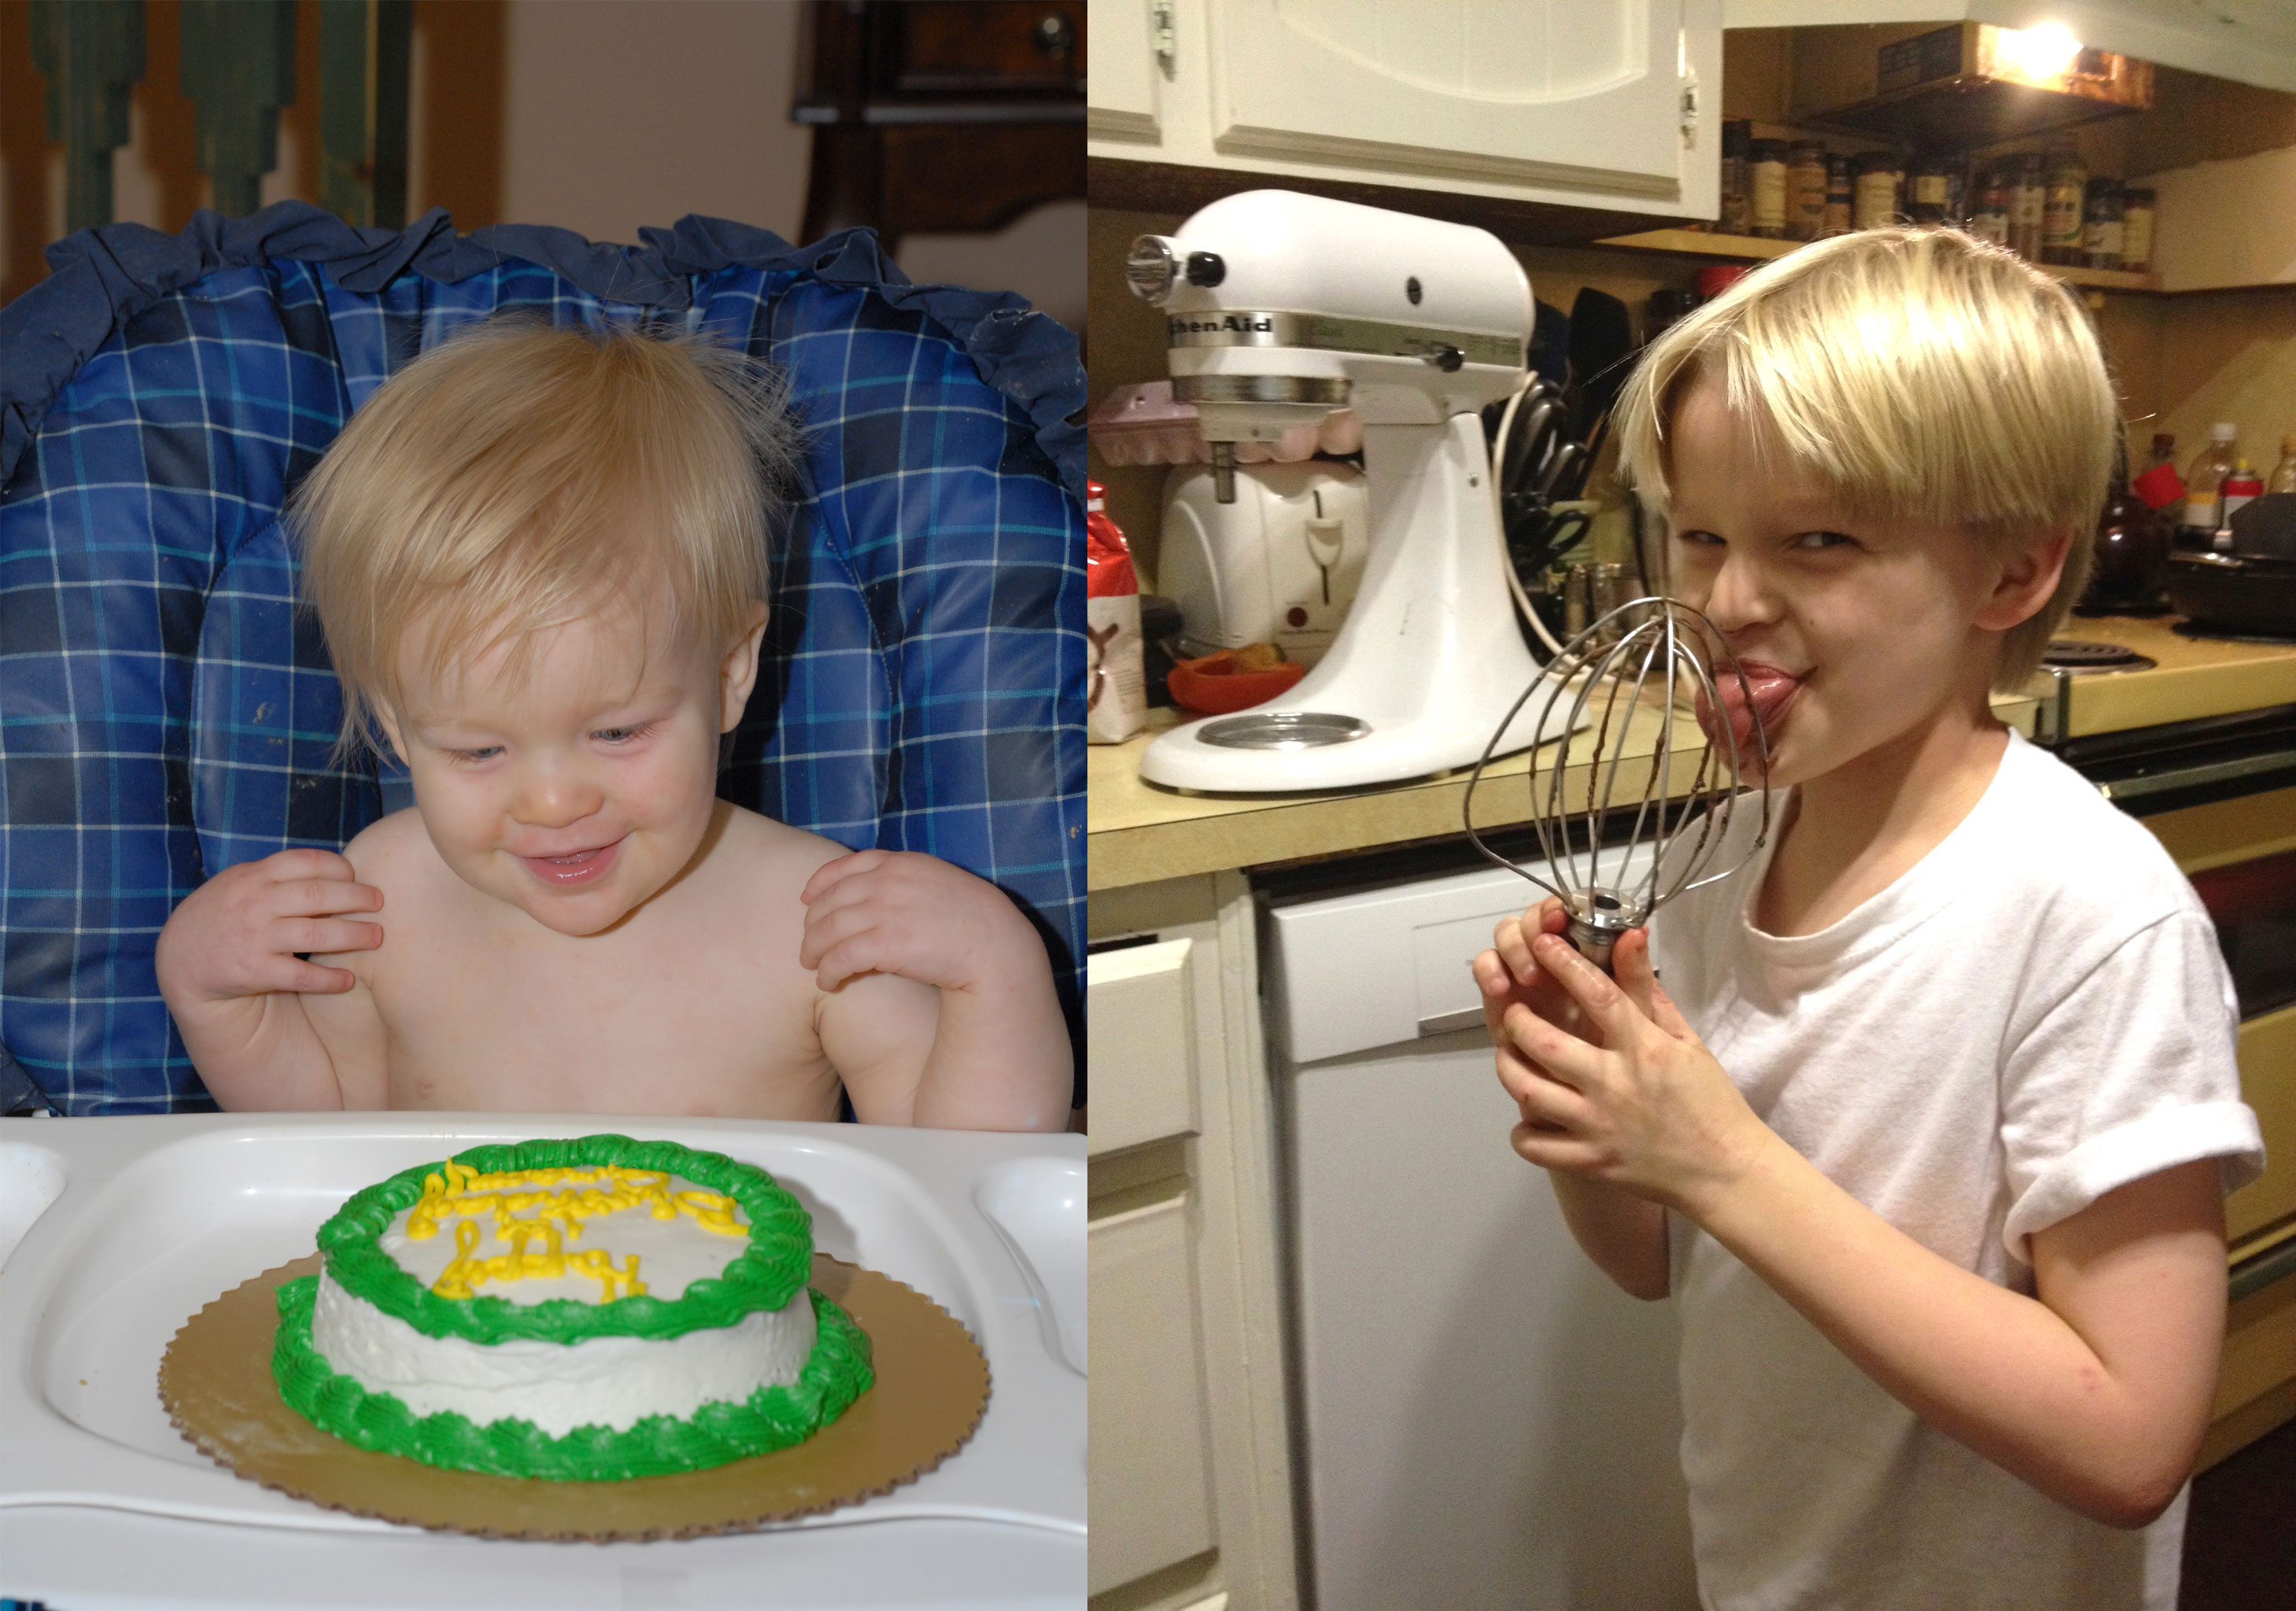 Our son's first birthday cake caused severe skin and respiratory reactions. We subsequently discovered he was allergic to wheat and other ingredients. These days he makes his own cakes and many of his own food choices.